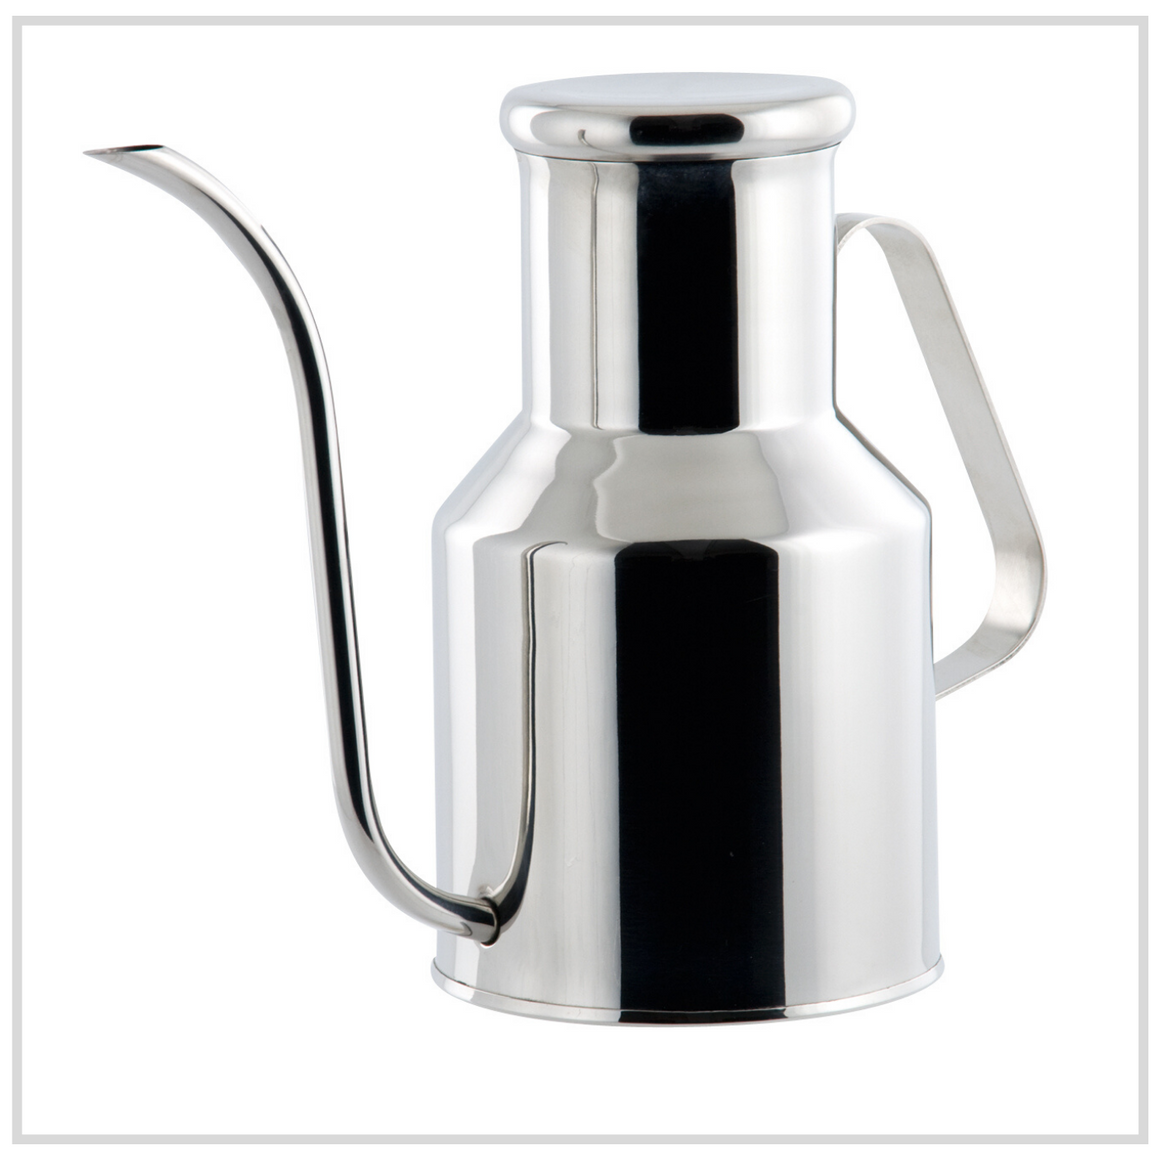 Ilsa Stainless Steel Oil Pourer - 500ml